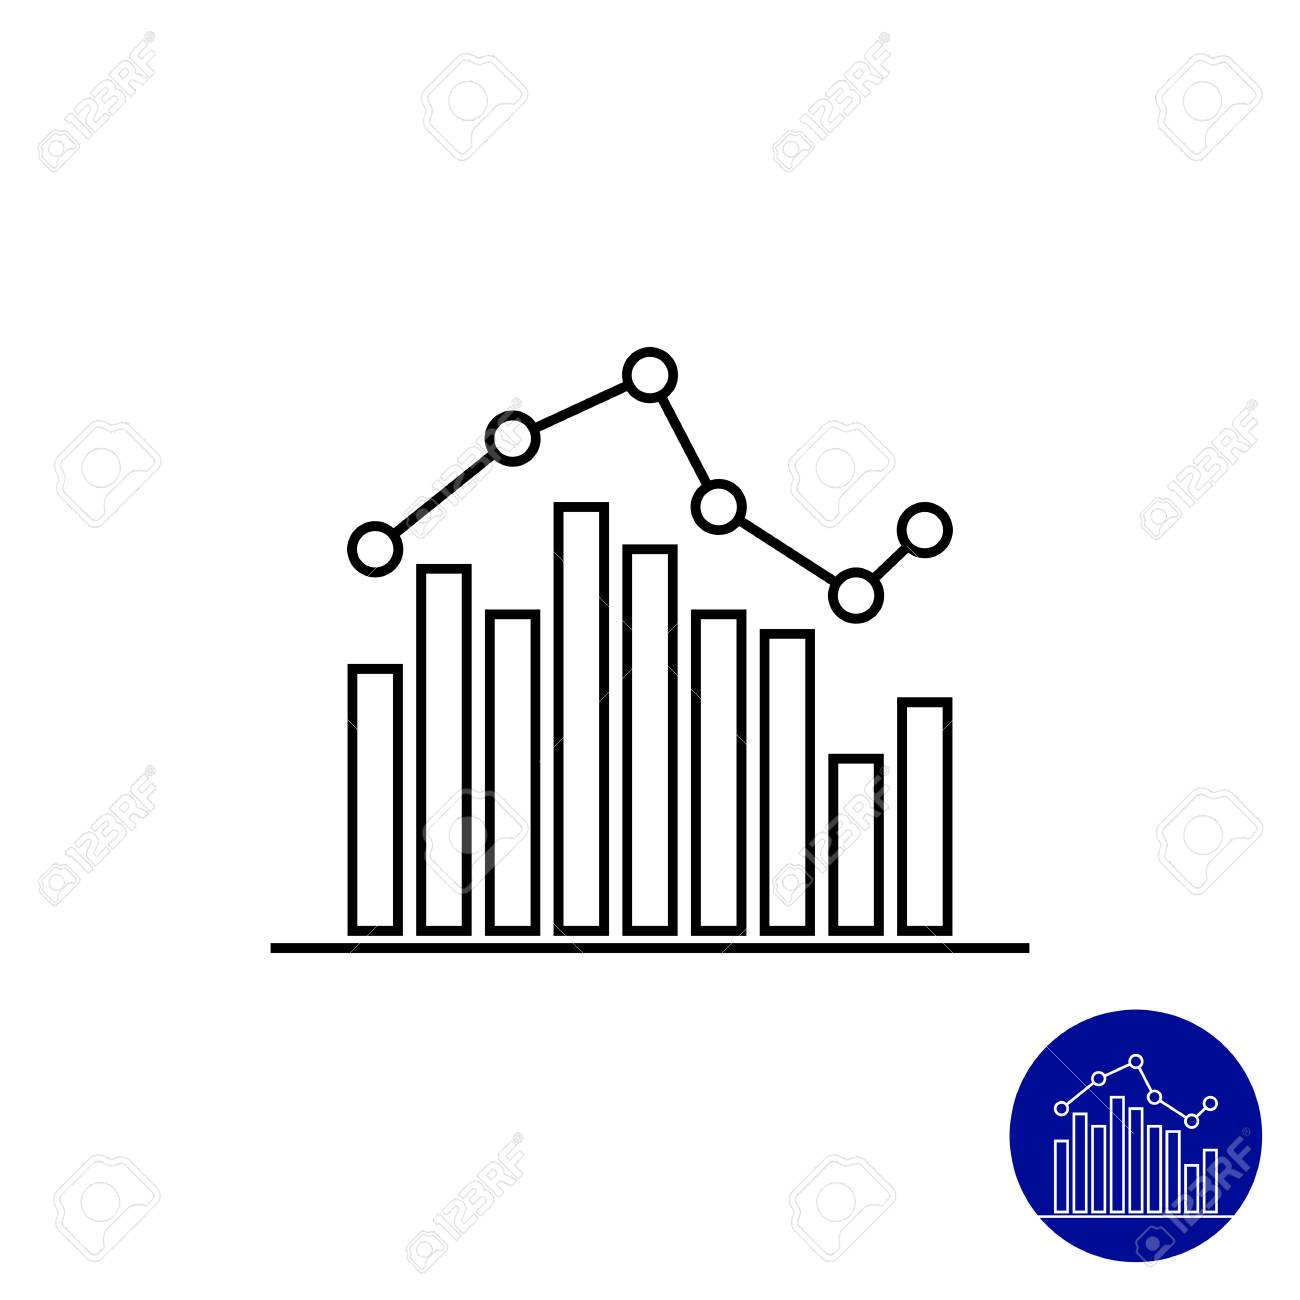 Icon of bar chart with line graph royalty free cliparts vectors icon of bar chart with line graph stock vector 44001525 ccuart Choice Image